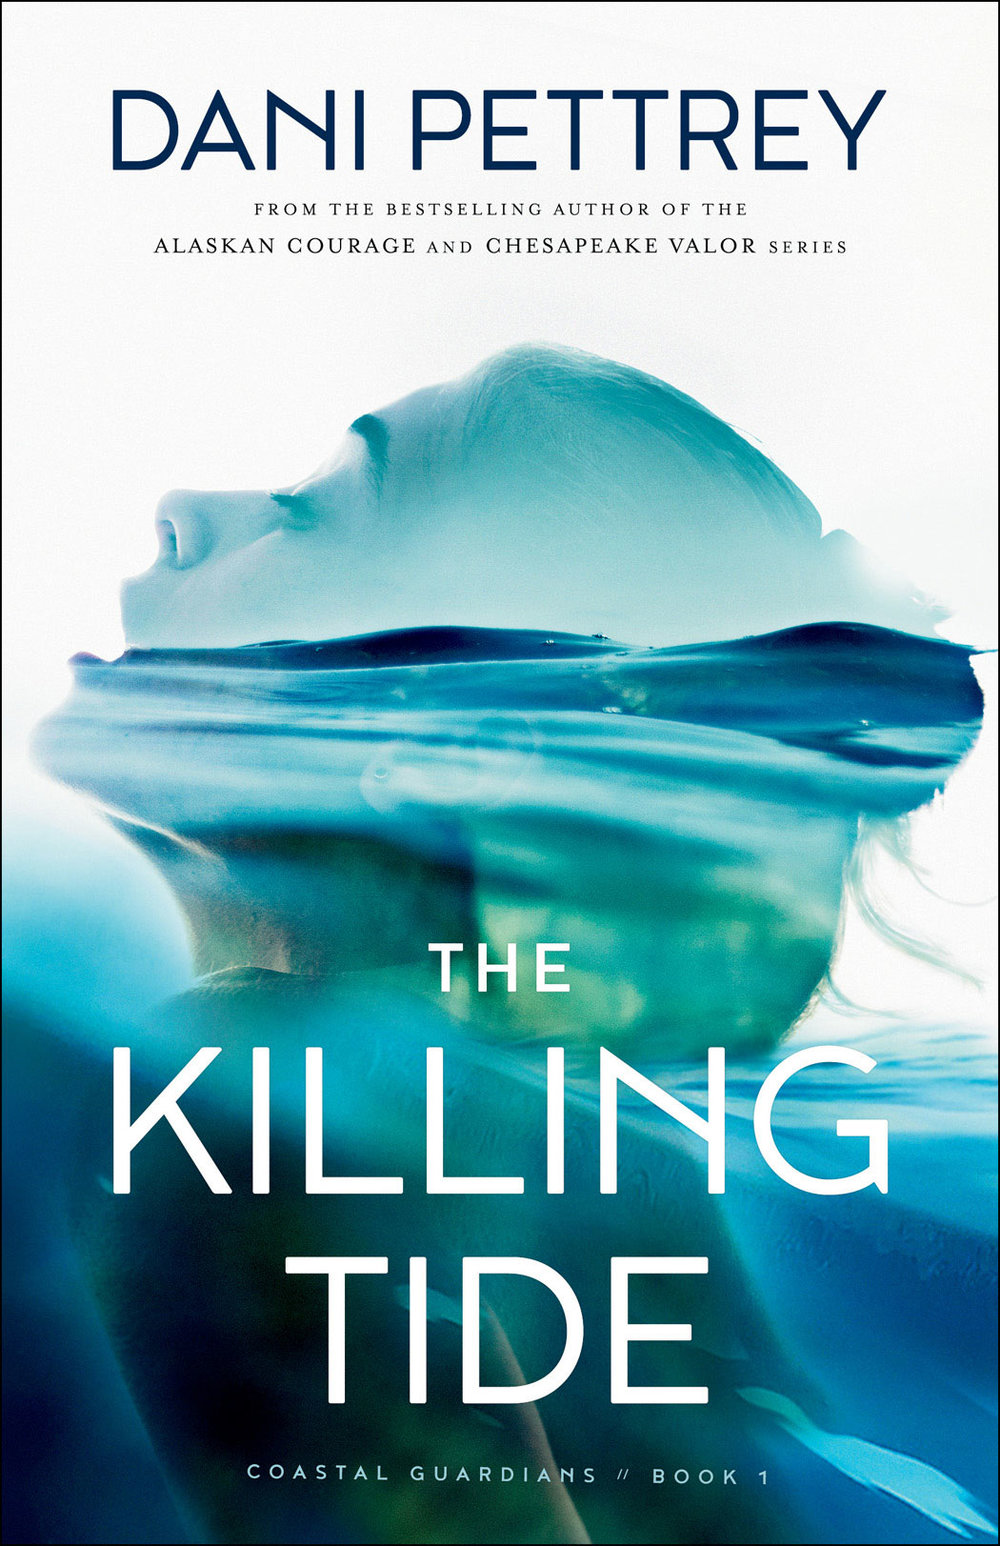 The-Killing-Tide-by-Dani-Pettrey.jpg